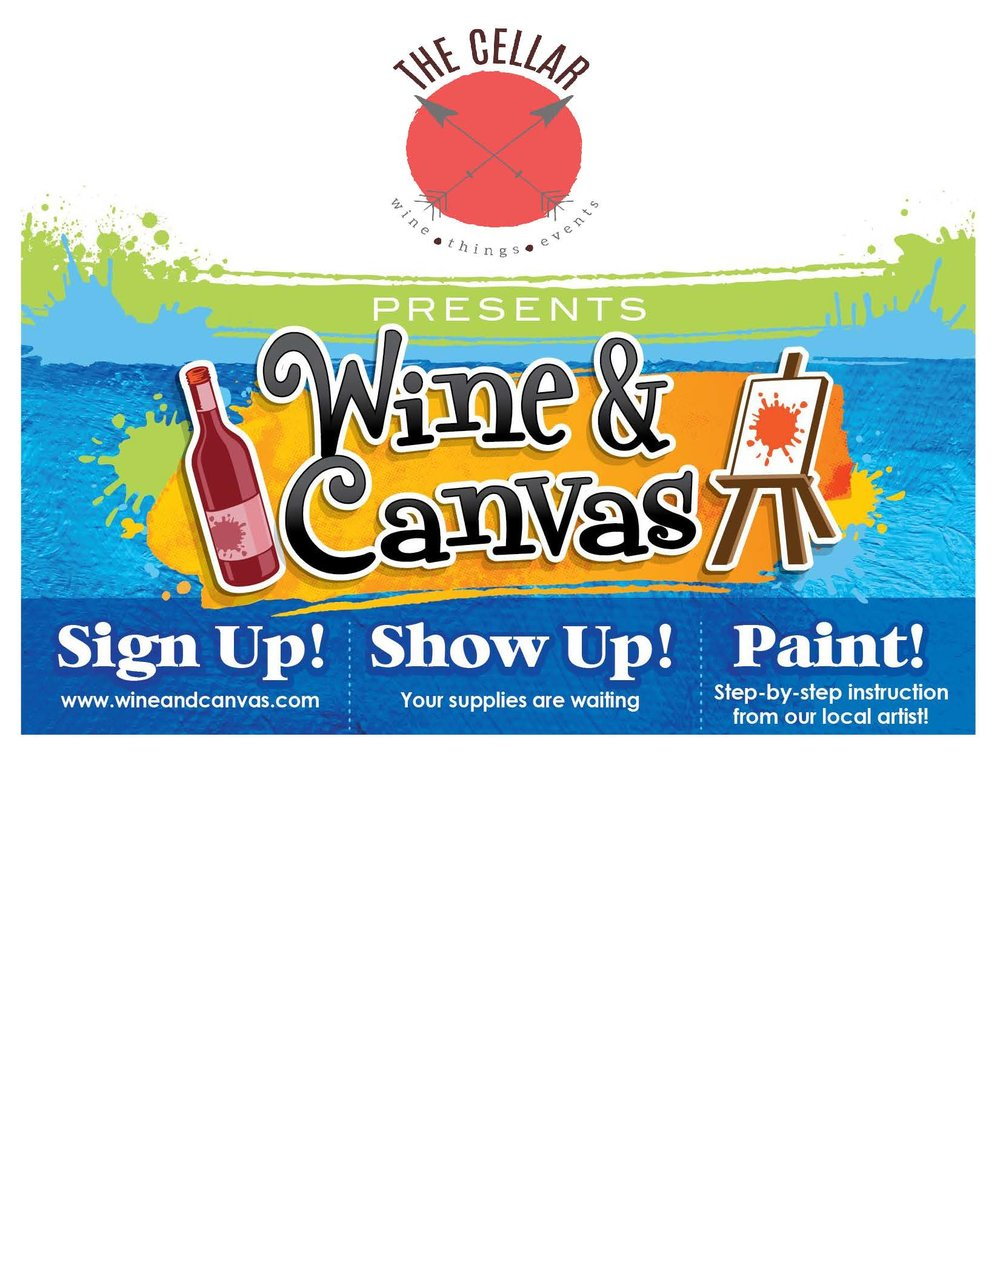 515 829 0661  or www.WineandCanvas.com